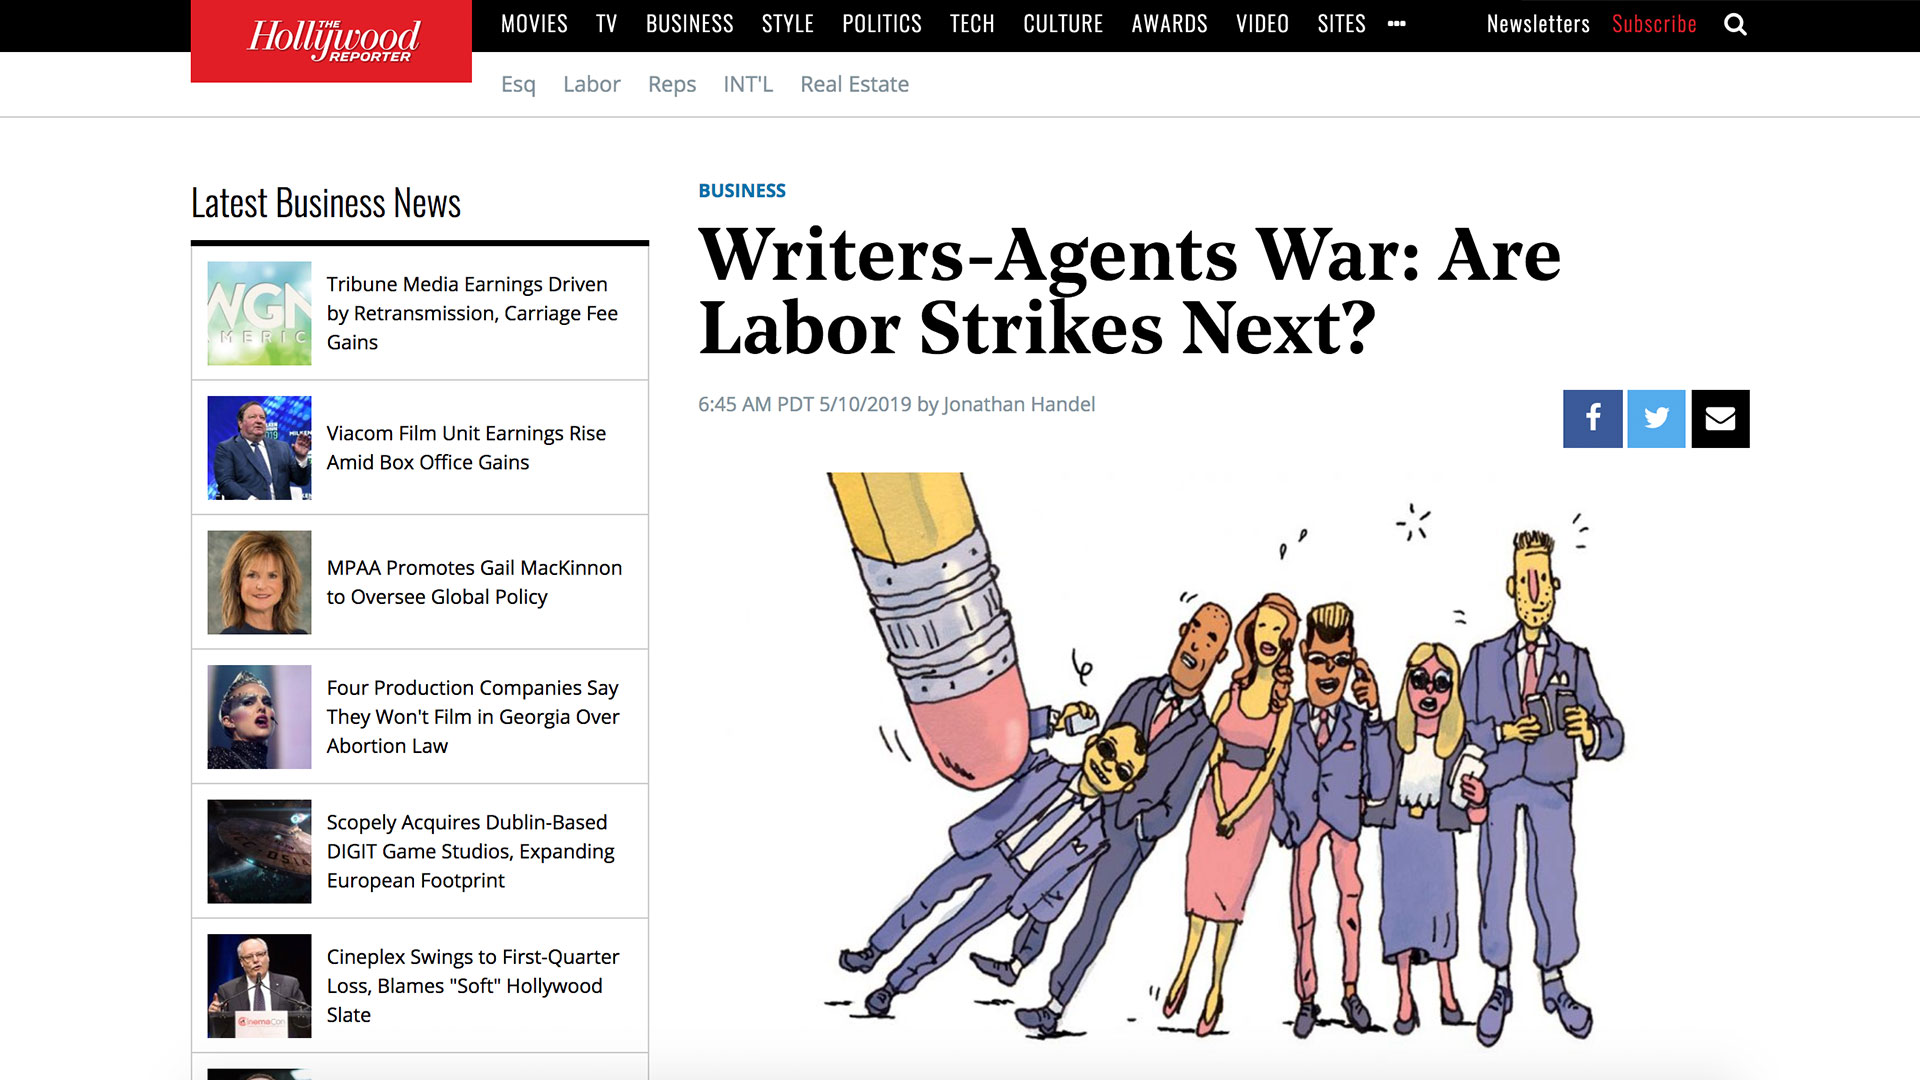 Fairness Rocks News Writers-Agents War: Are Labor Strikes Next?